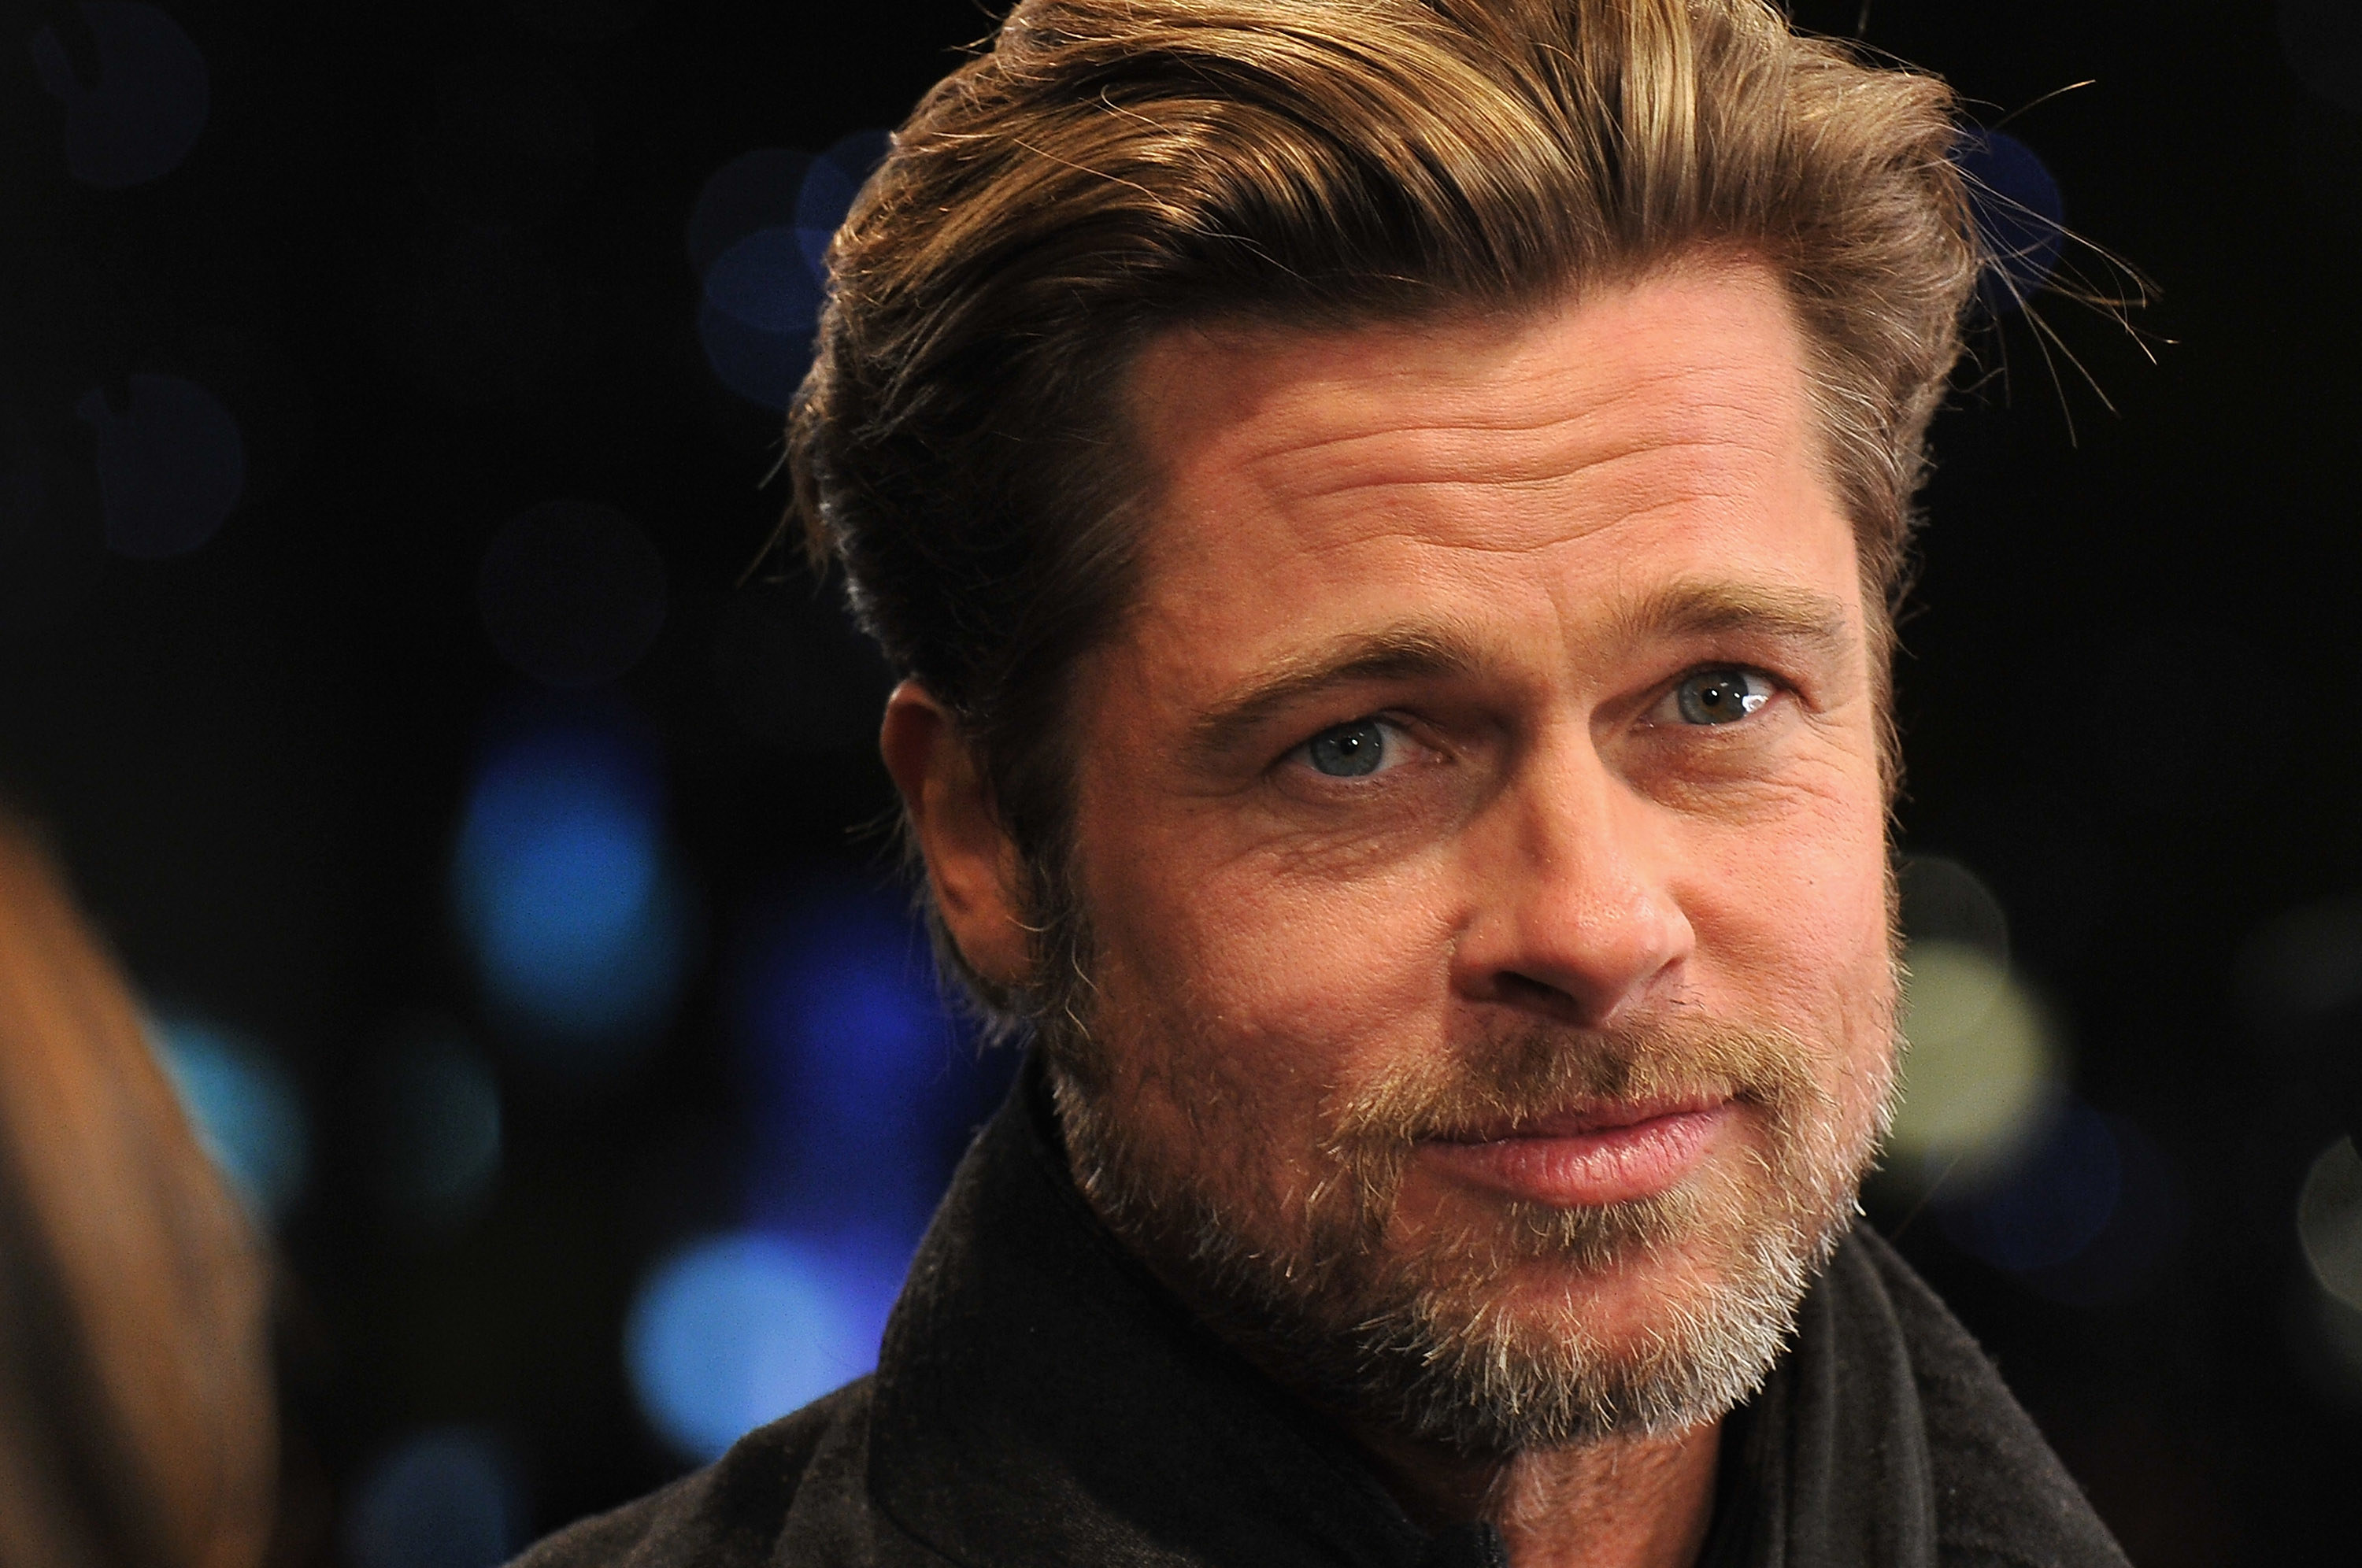 Brad Pitt, Jennifer Lawrence dating rumors completely false